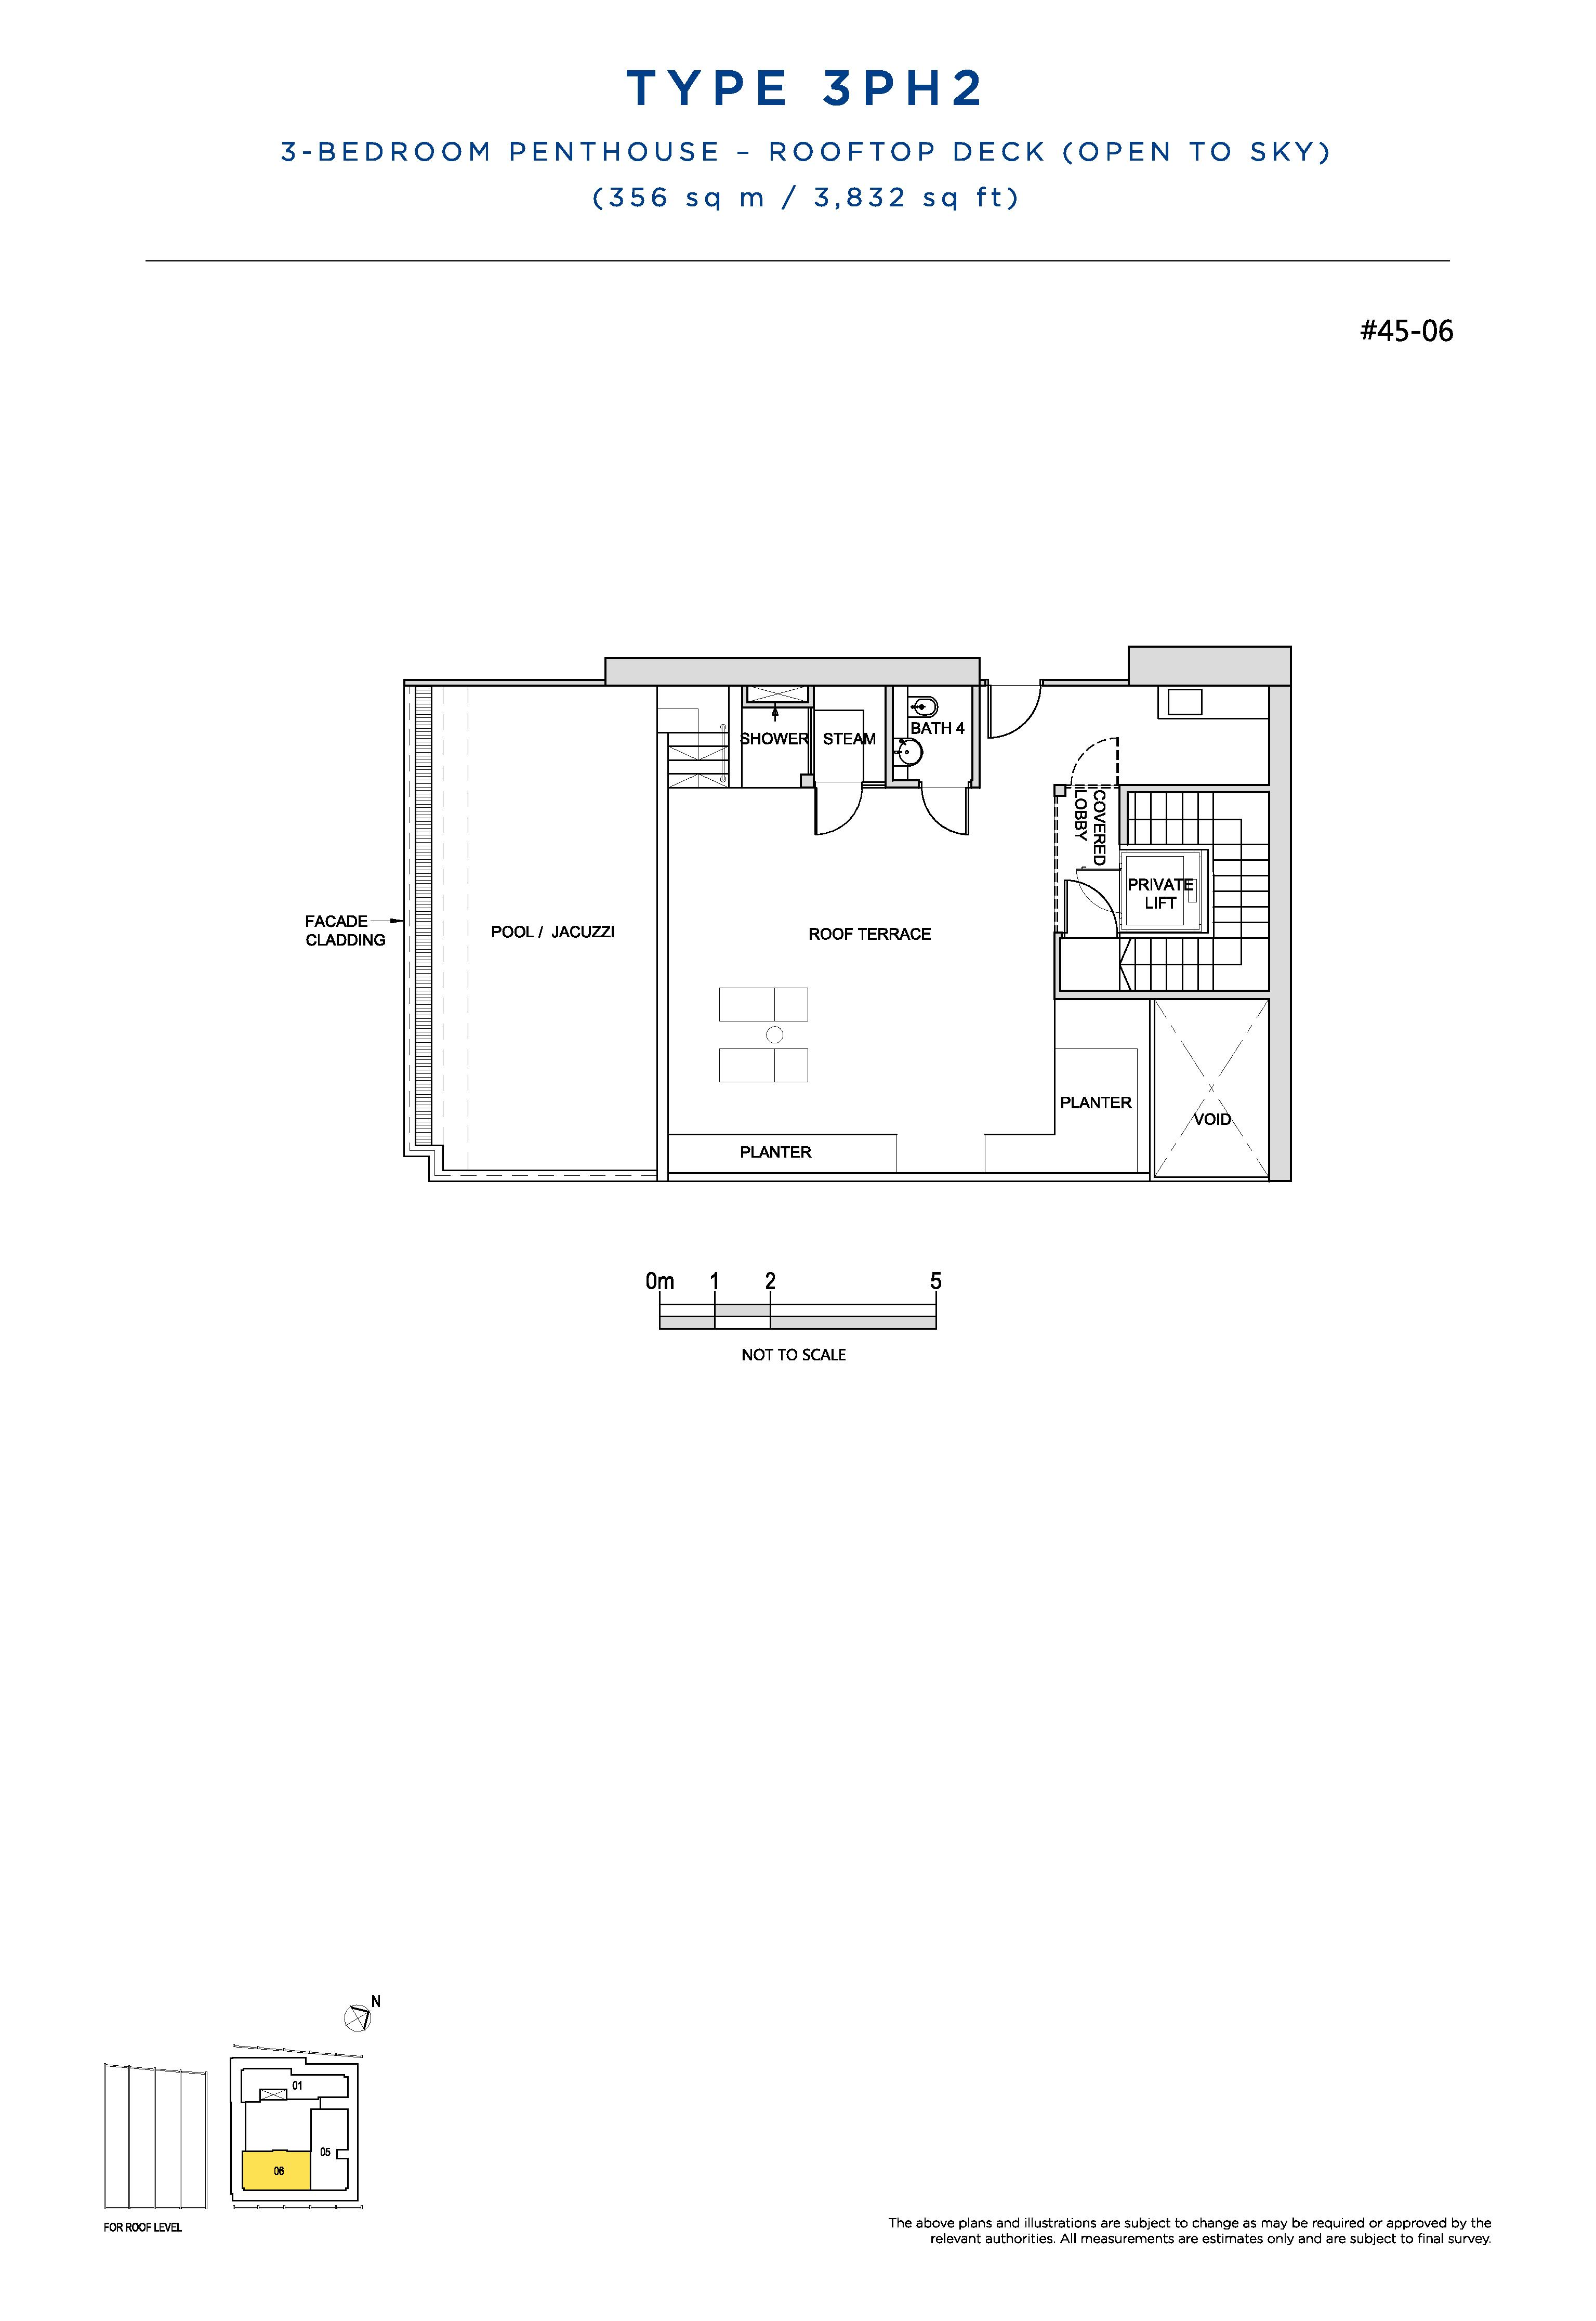 South Beach Residences 3 Bedroom Penthouse Floor Plans Type 3PH2(Rooftop Deck)